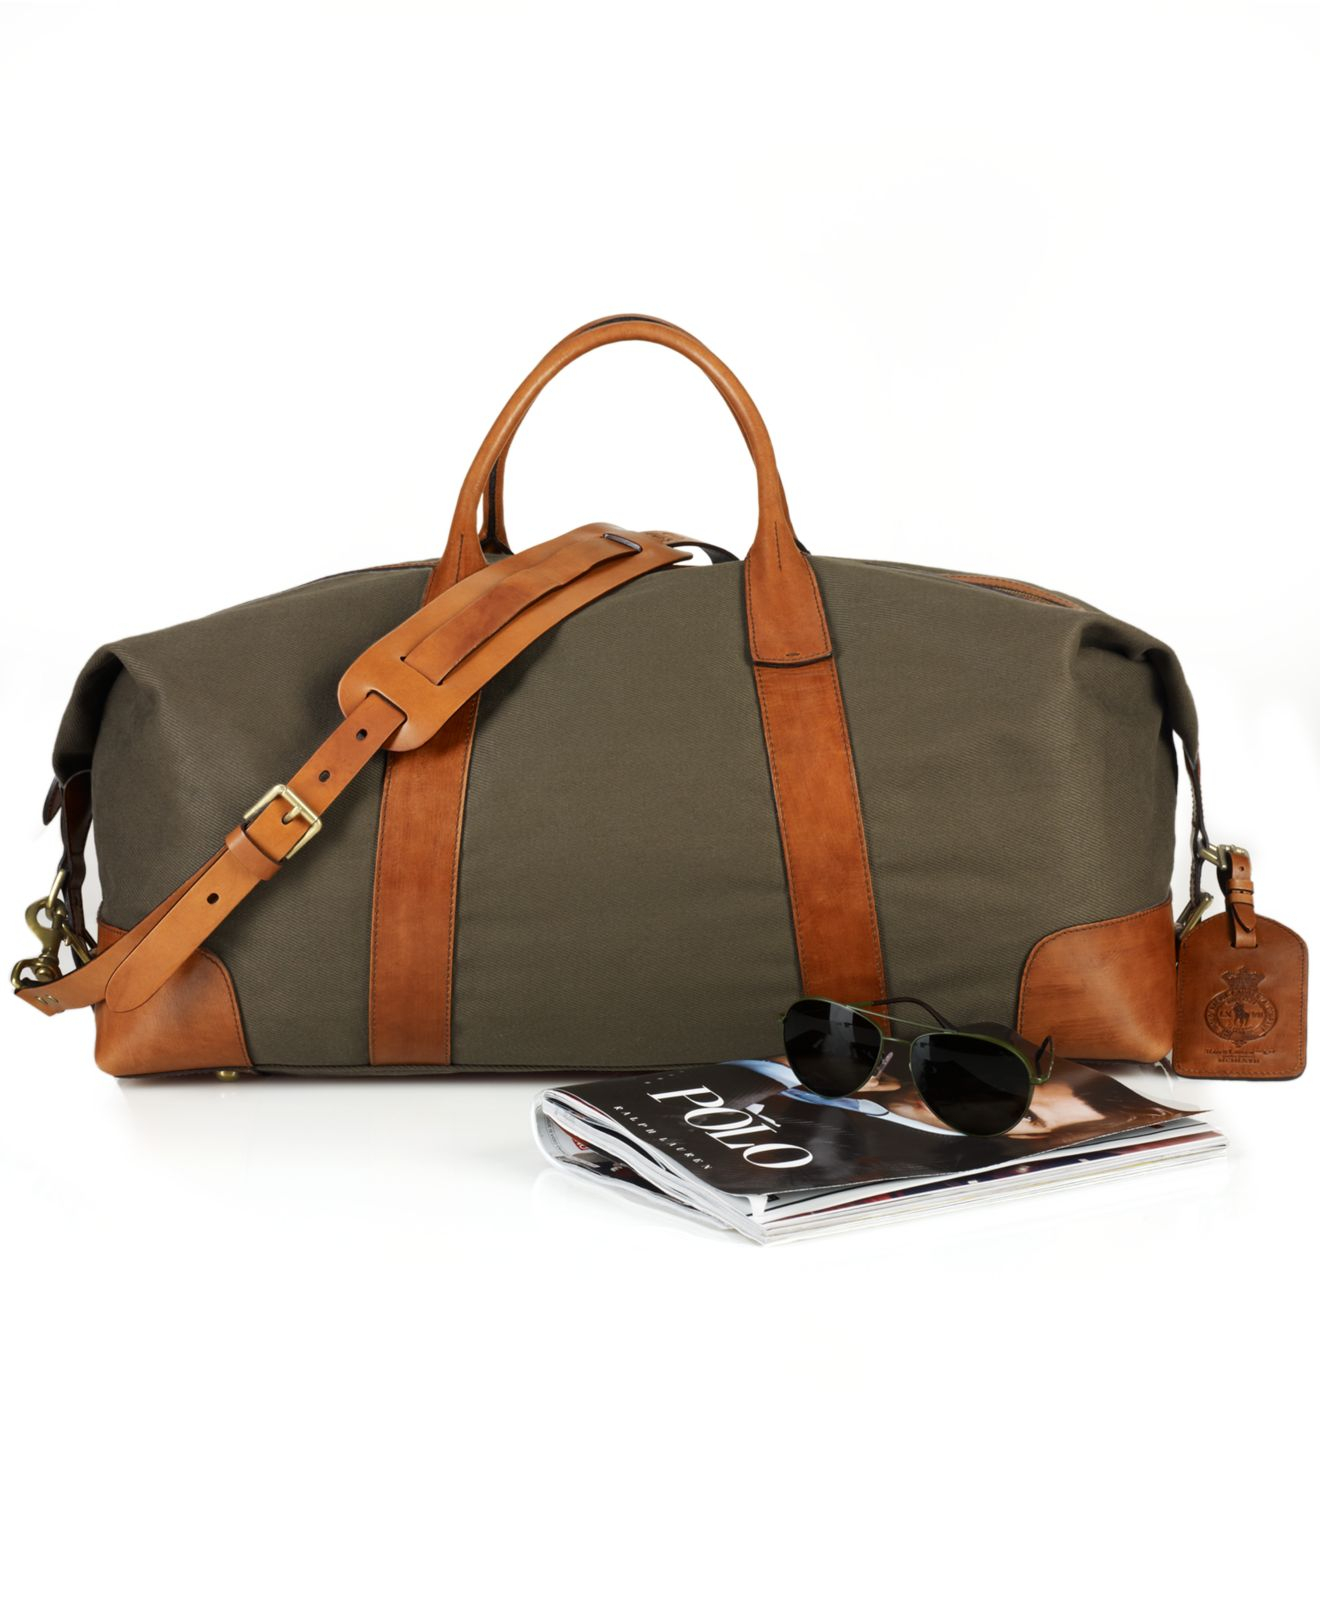 Lyst - Polo Ralph Lauren Canvas   Leather Duffel Bag in Green for Men 94c8d4ef03204